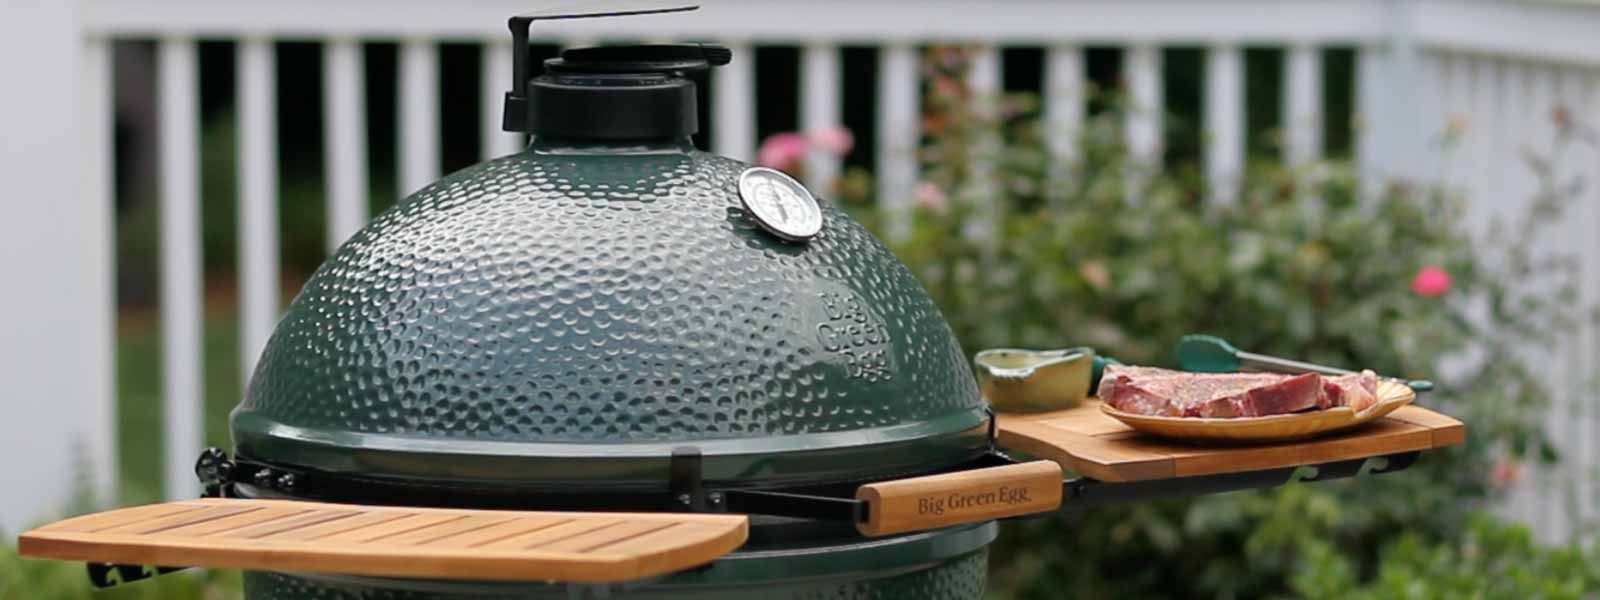 XL EGG with EGGmates and steak getting ready to be grilled in a beautiful backyard setting.